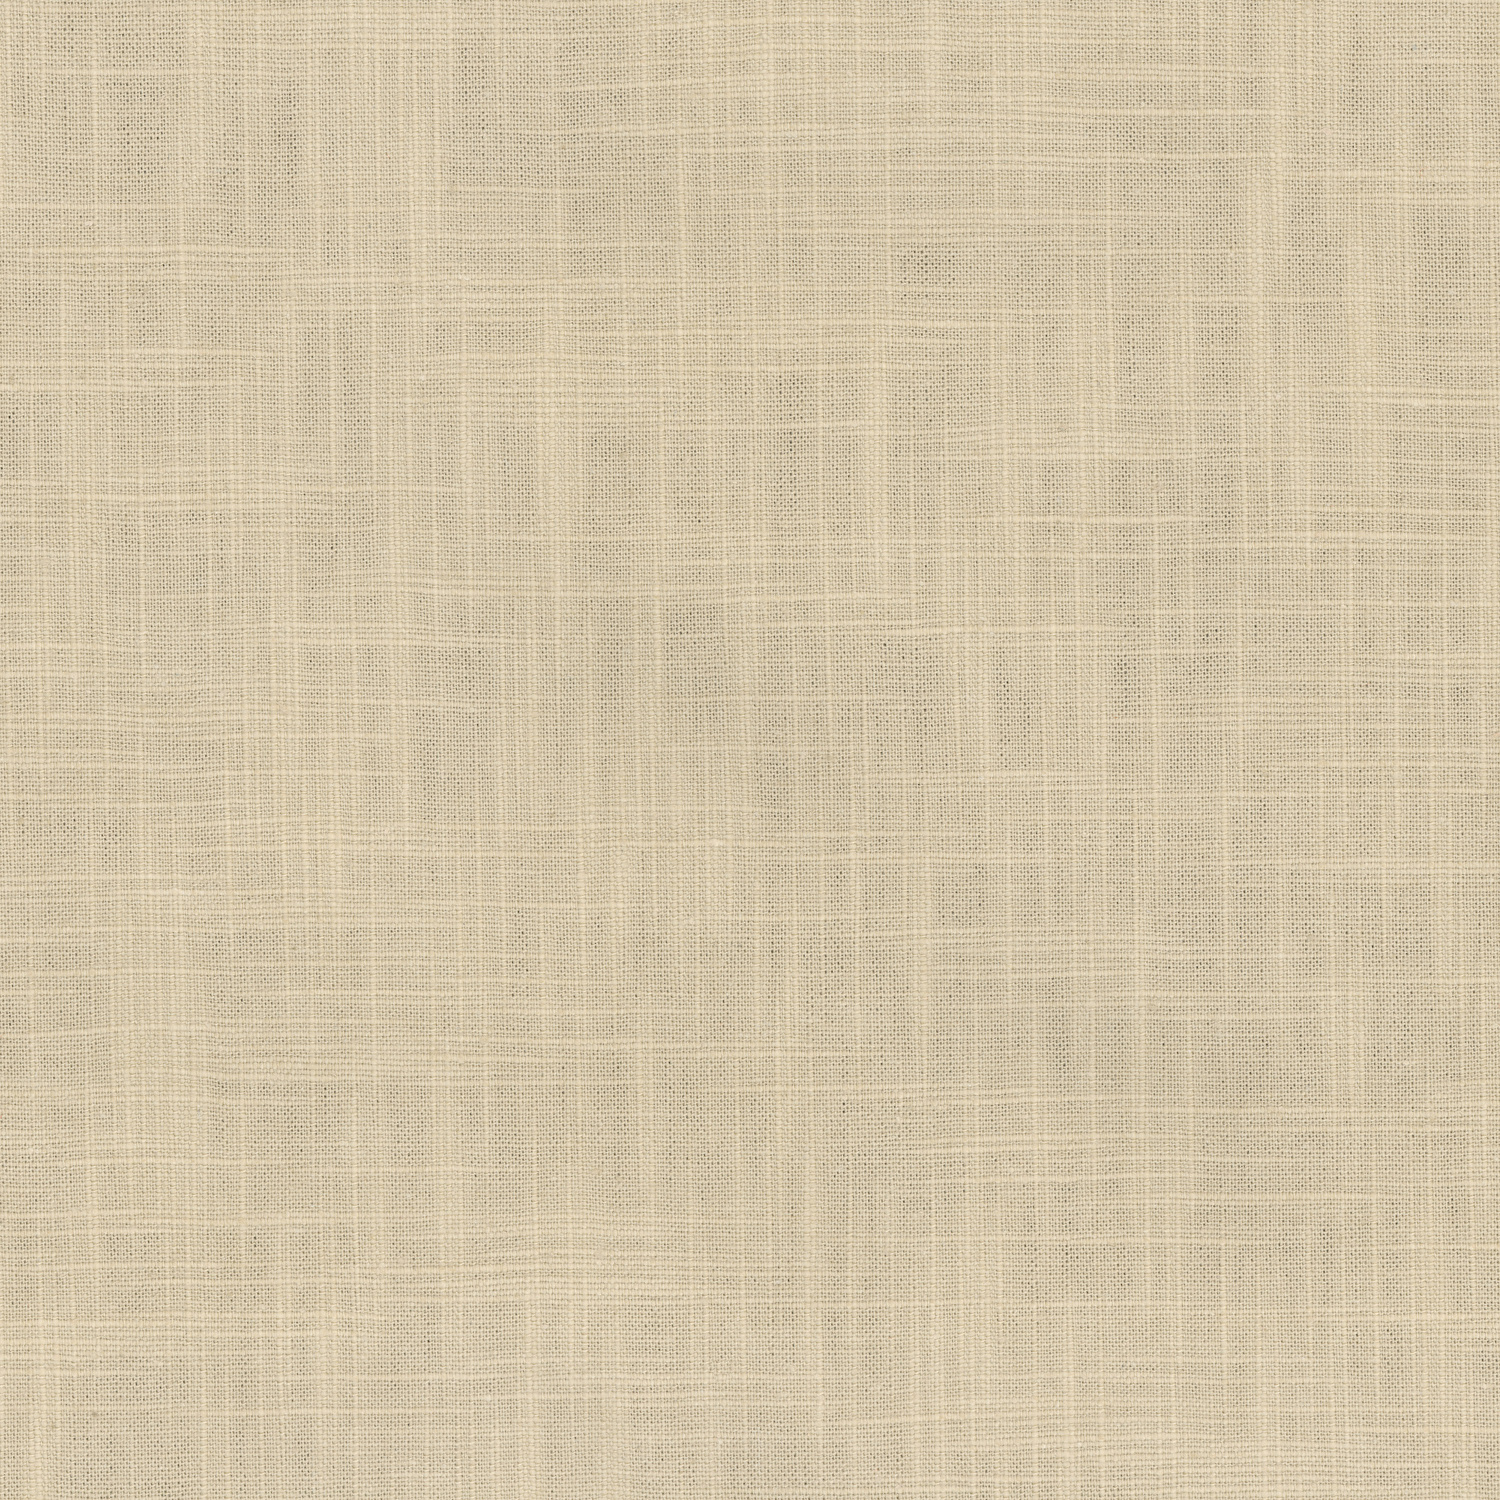 P/K Lifestyles Lightweight Decor Fabric 54\u0022-Derby Lightweight Decor/Beach